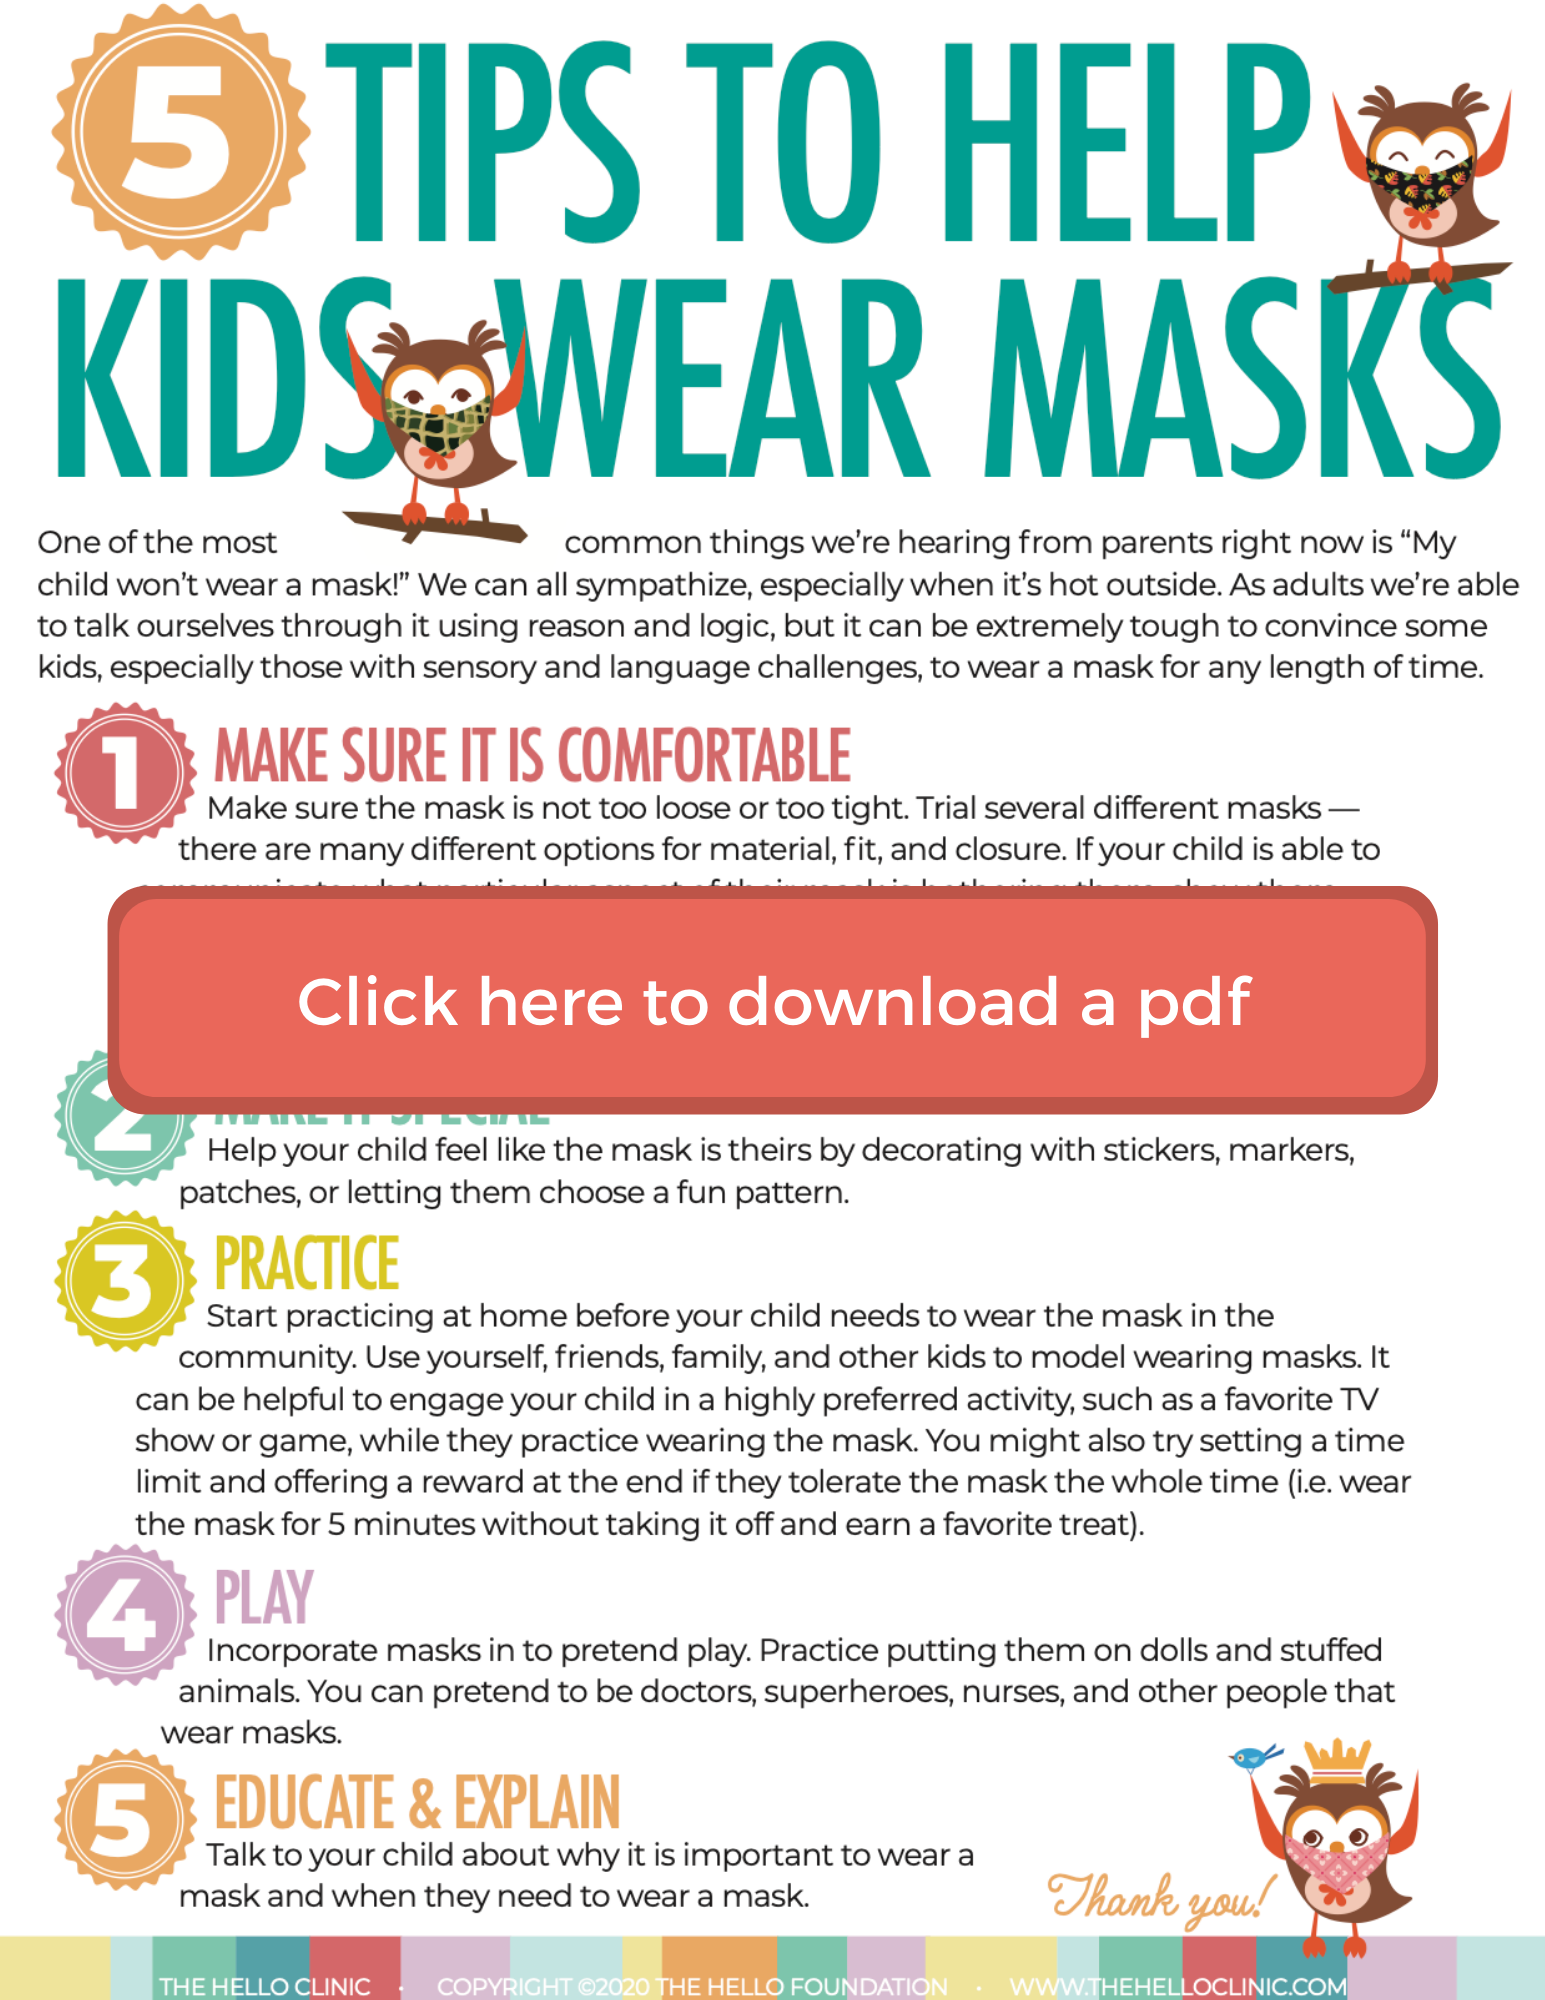 click image to download 5 tips masks pdf